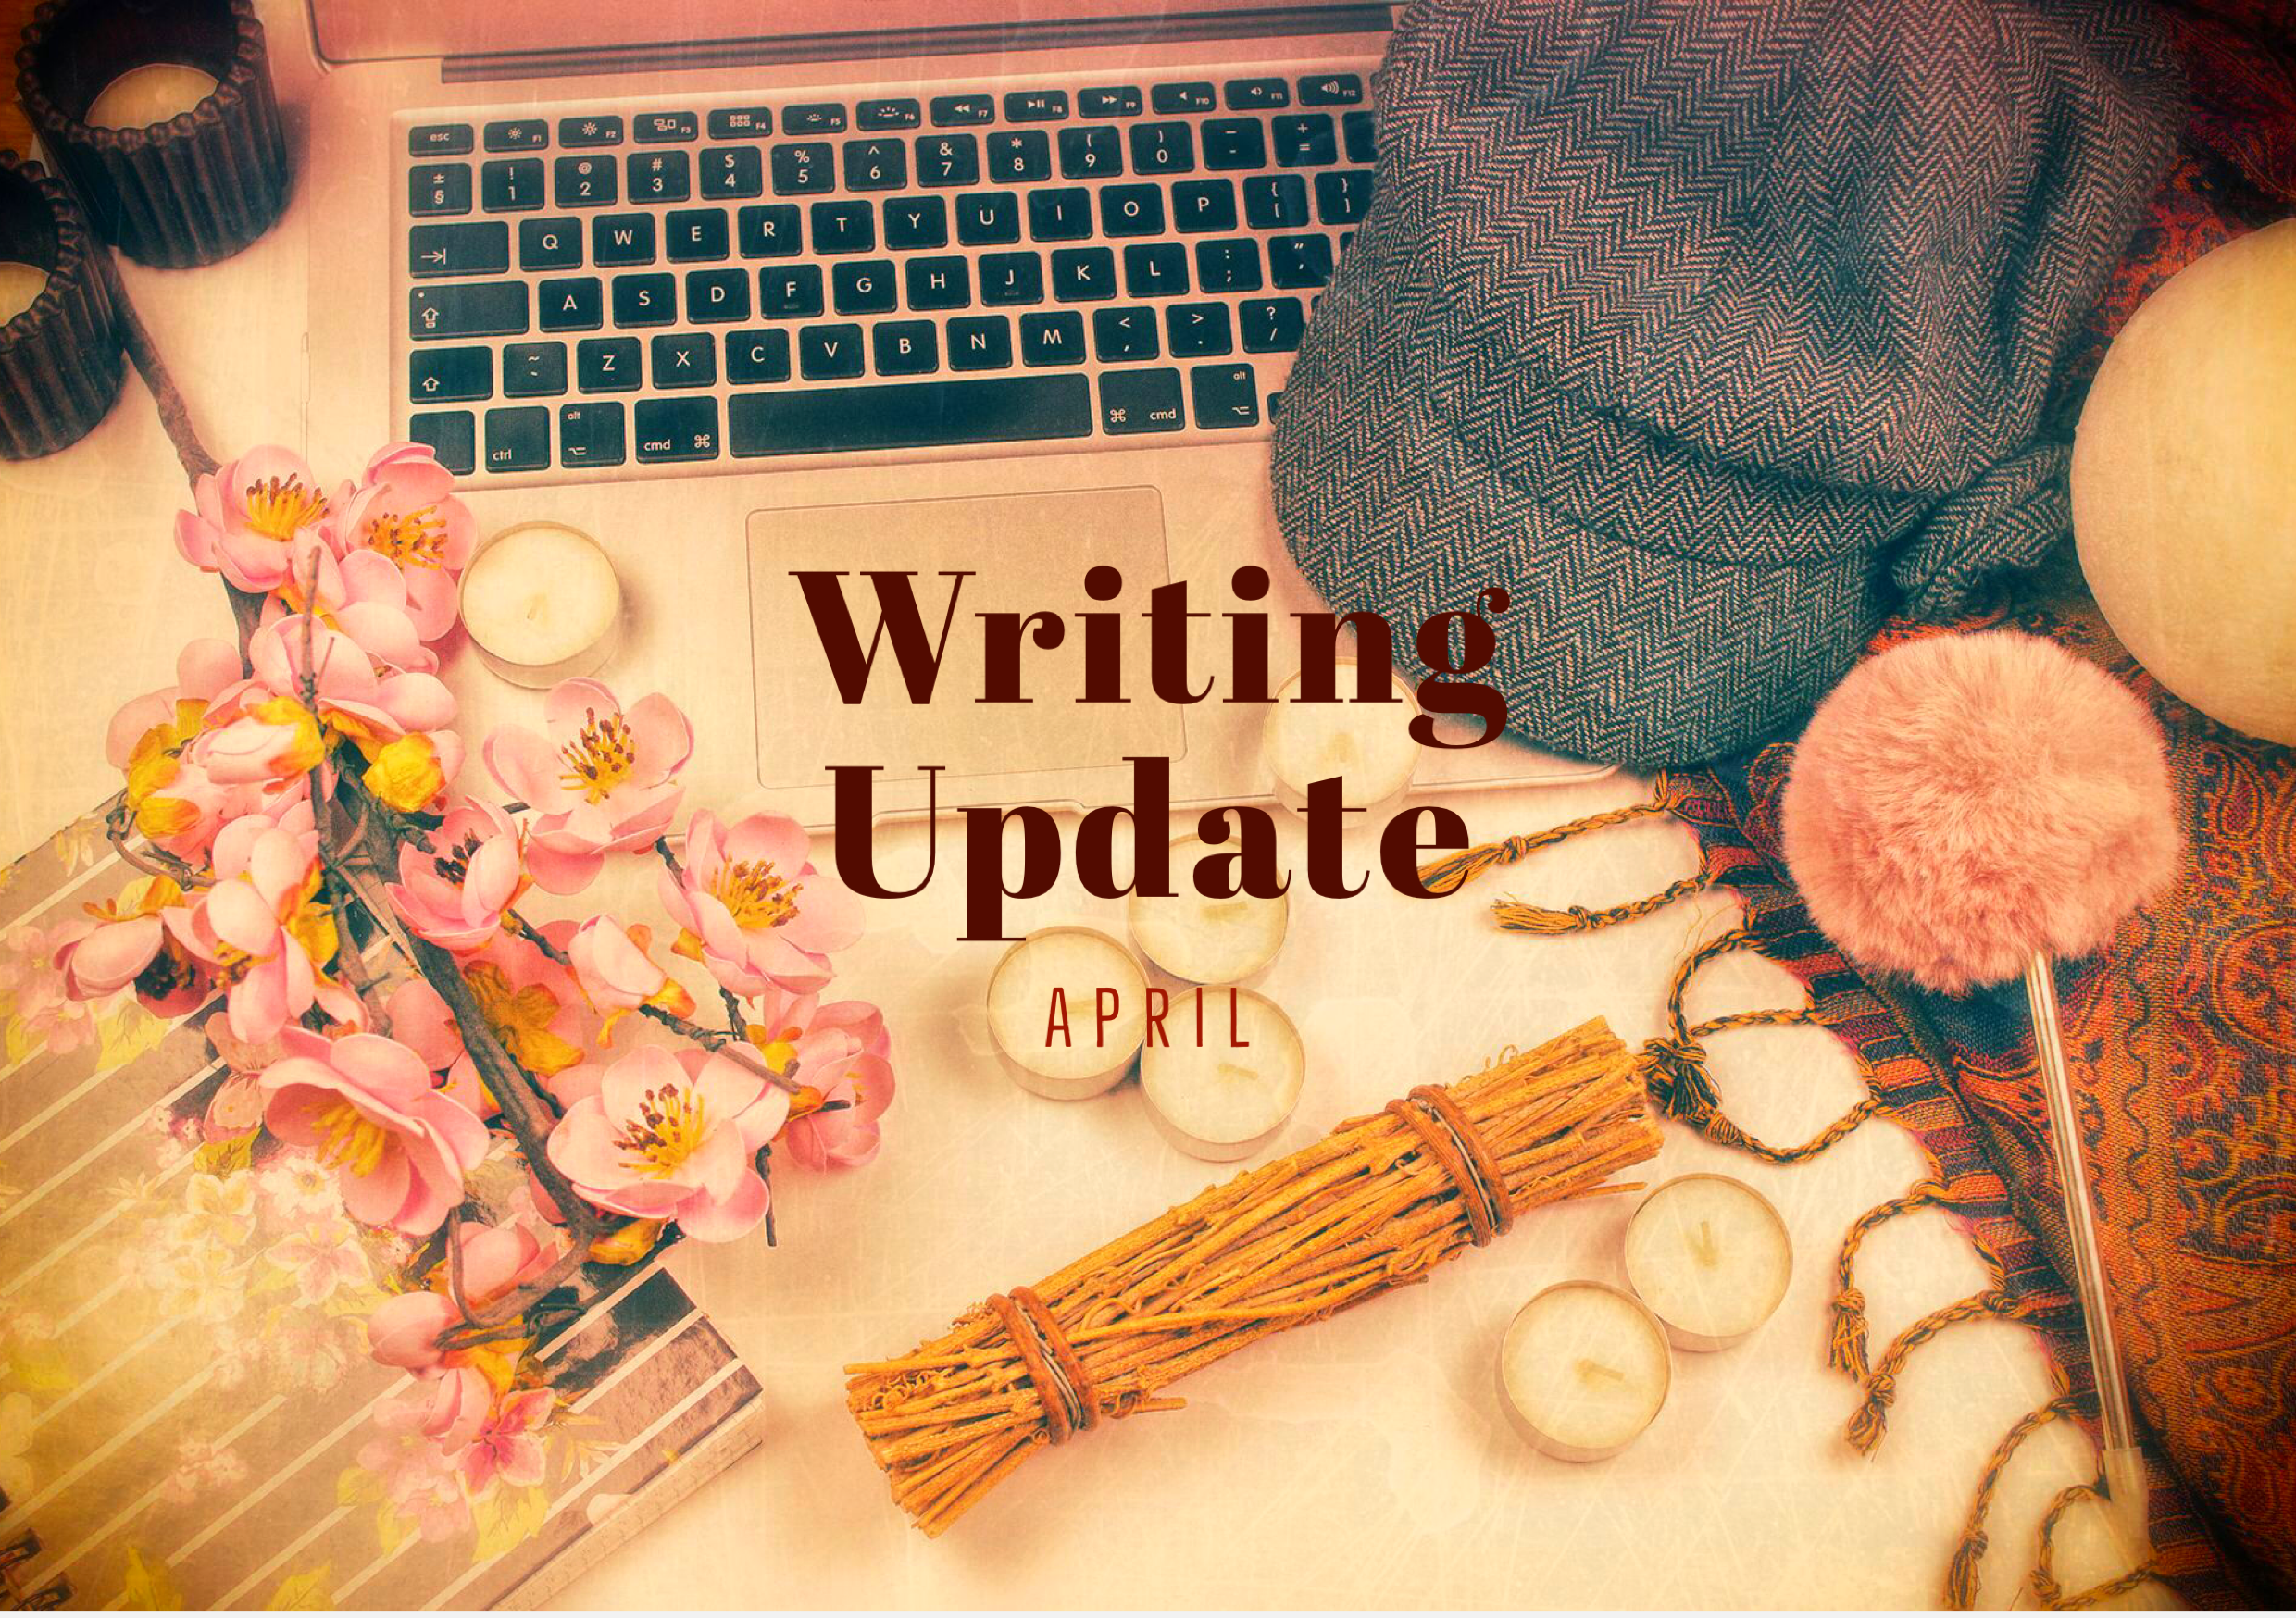 APRIL 2021 Writing Update #1: a 4-year anniversary